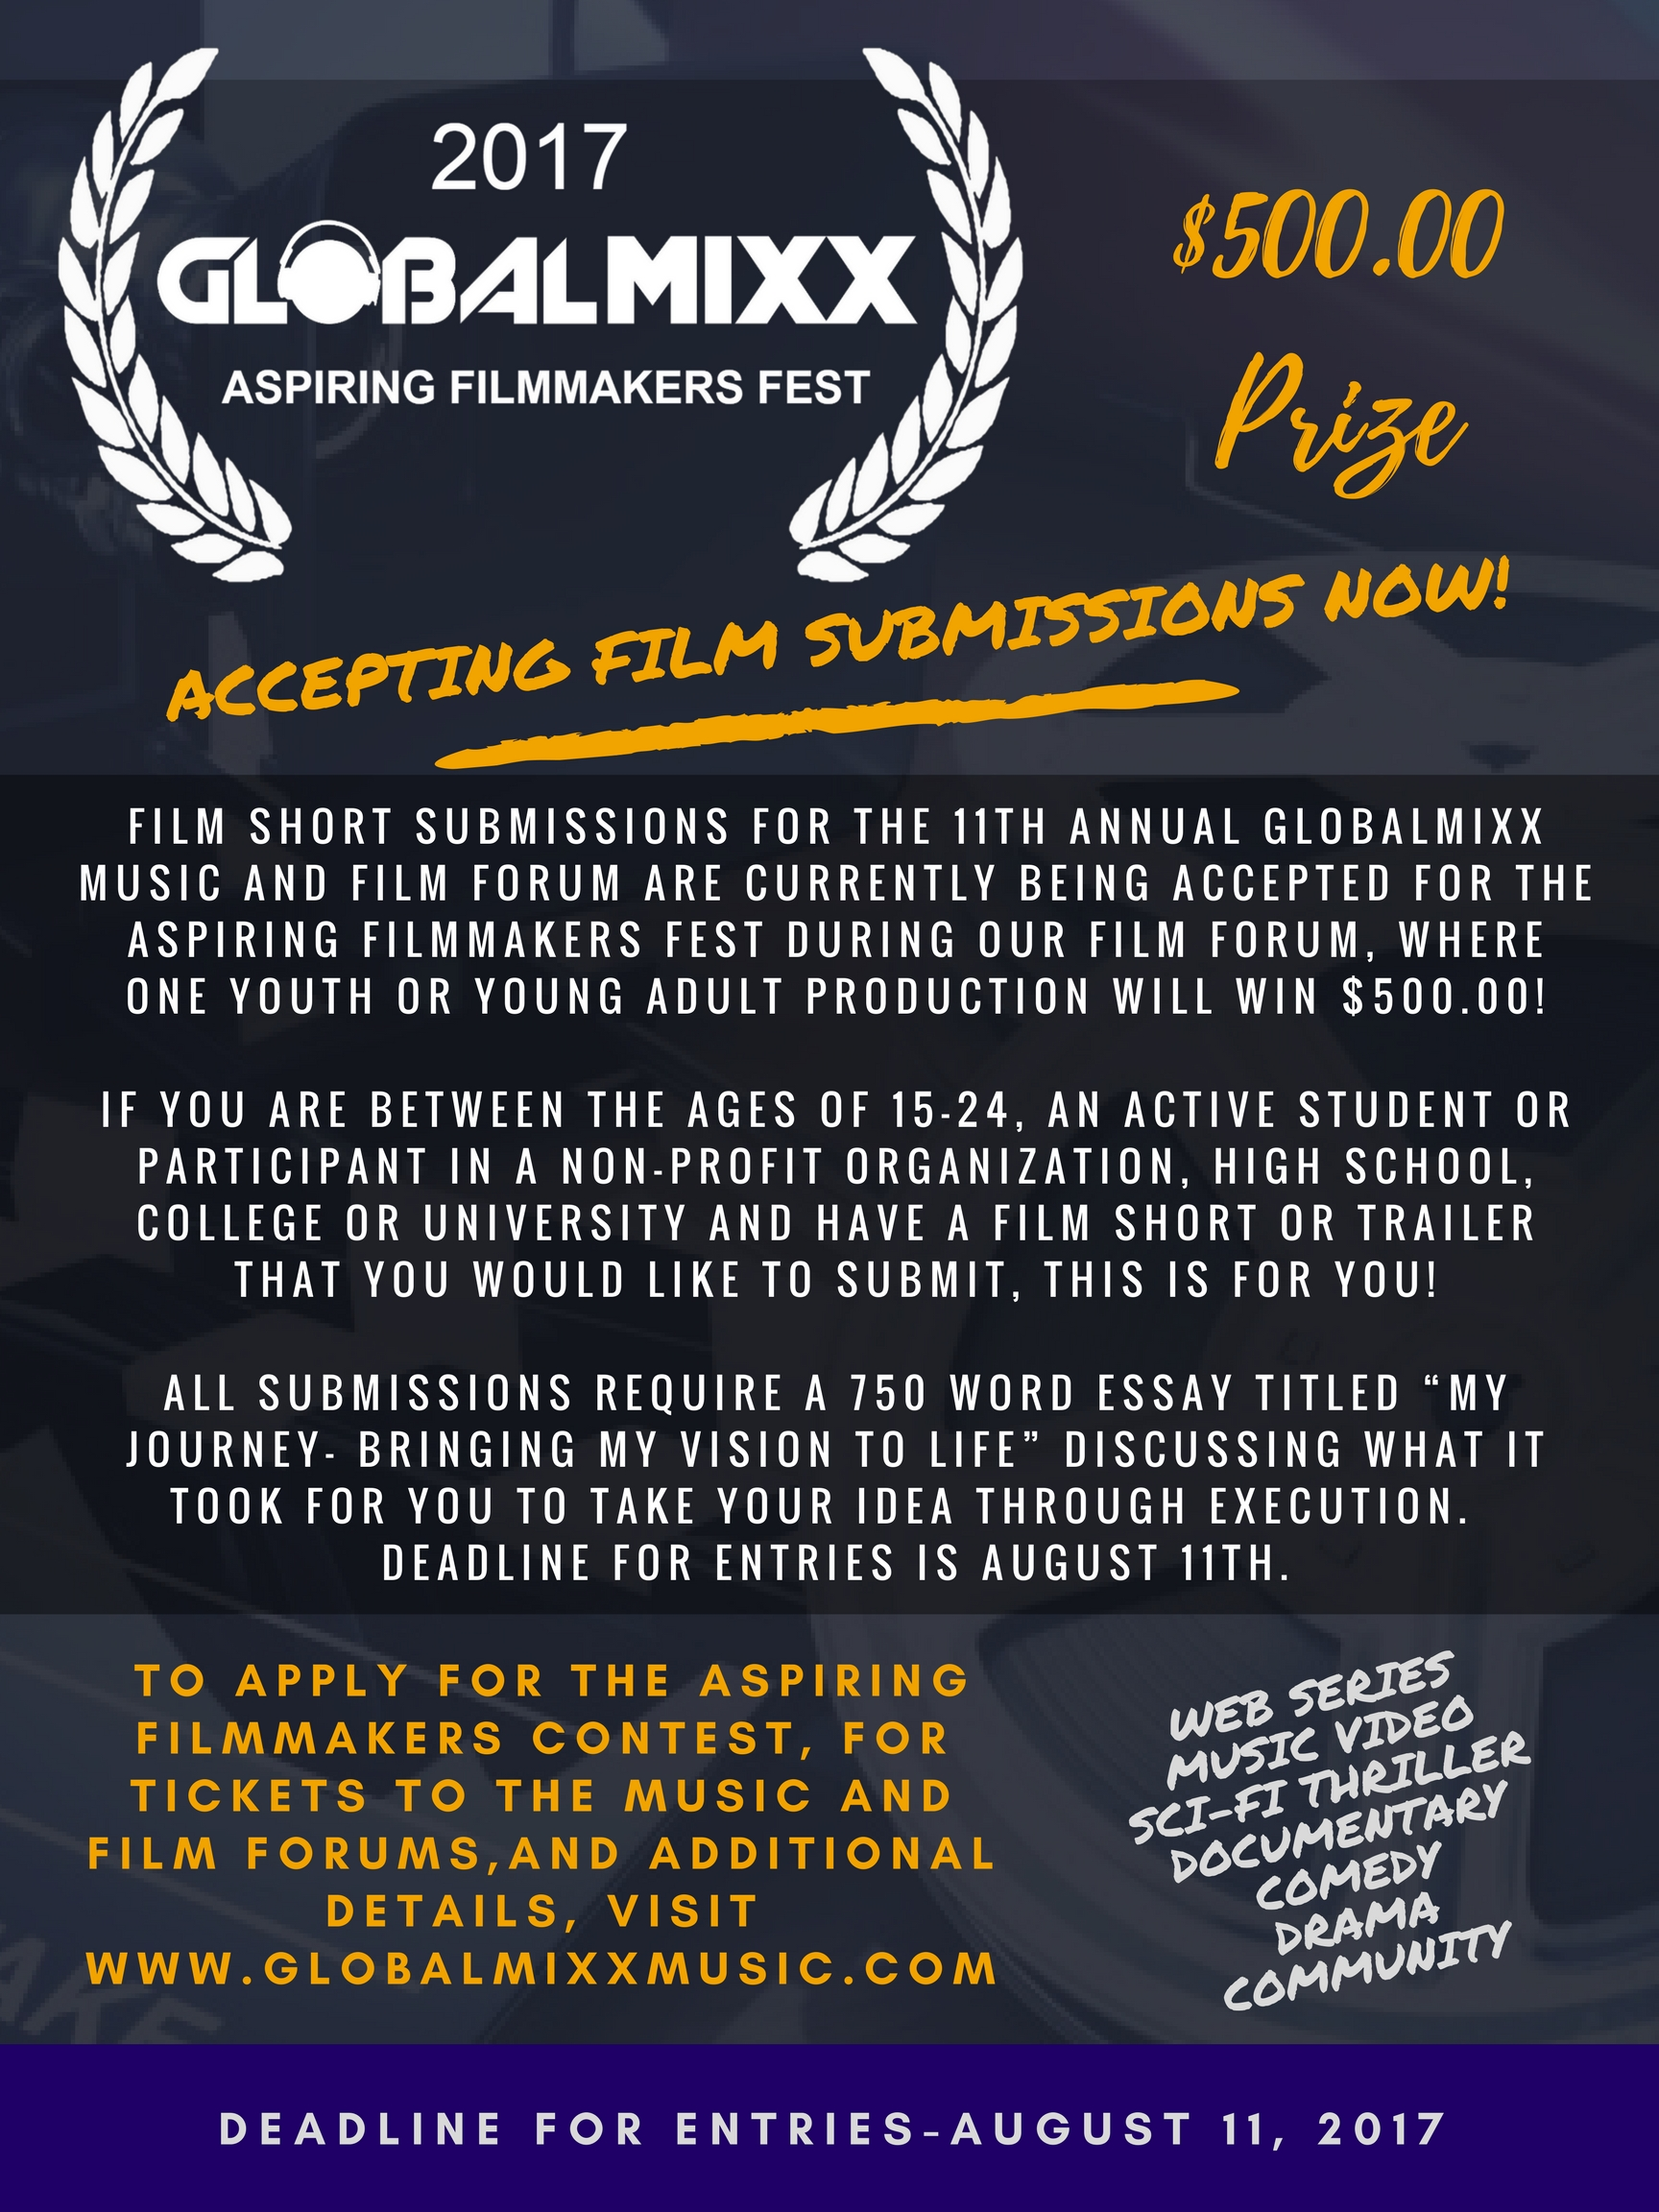 2017 global mixx film forum submission rules | global mixx media group